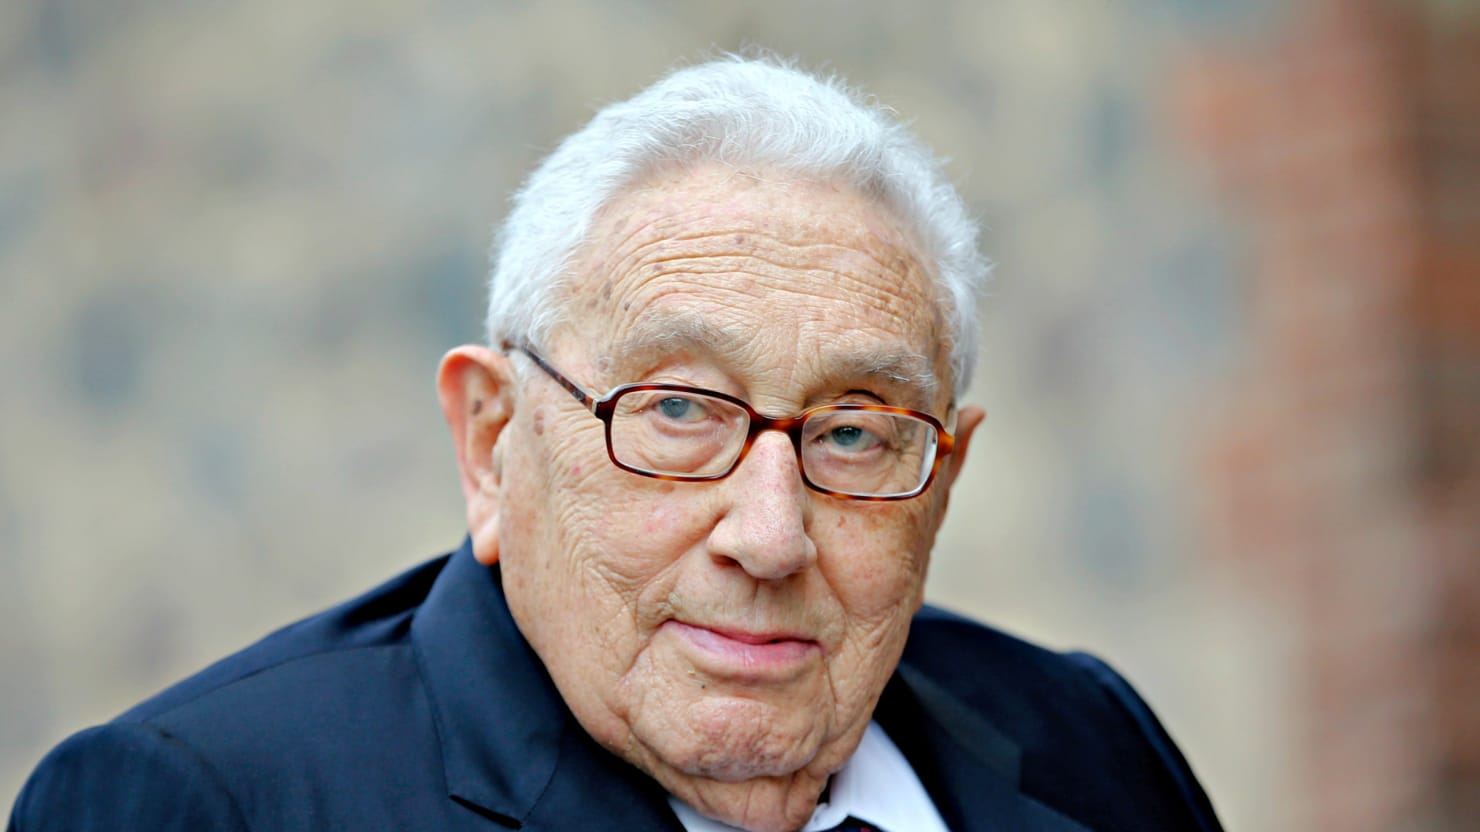 henry kissinger email There cannot be a crisis next week my schedule is already full - henry kissinger quotes from brainyquotecom.